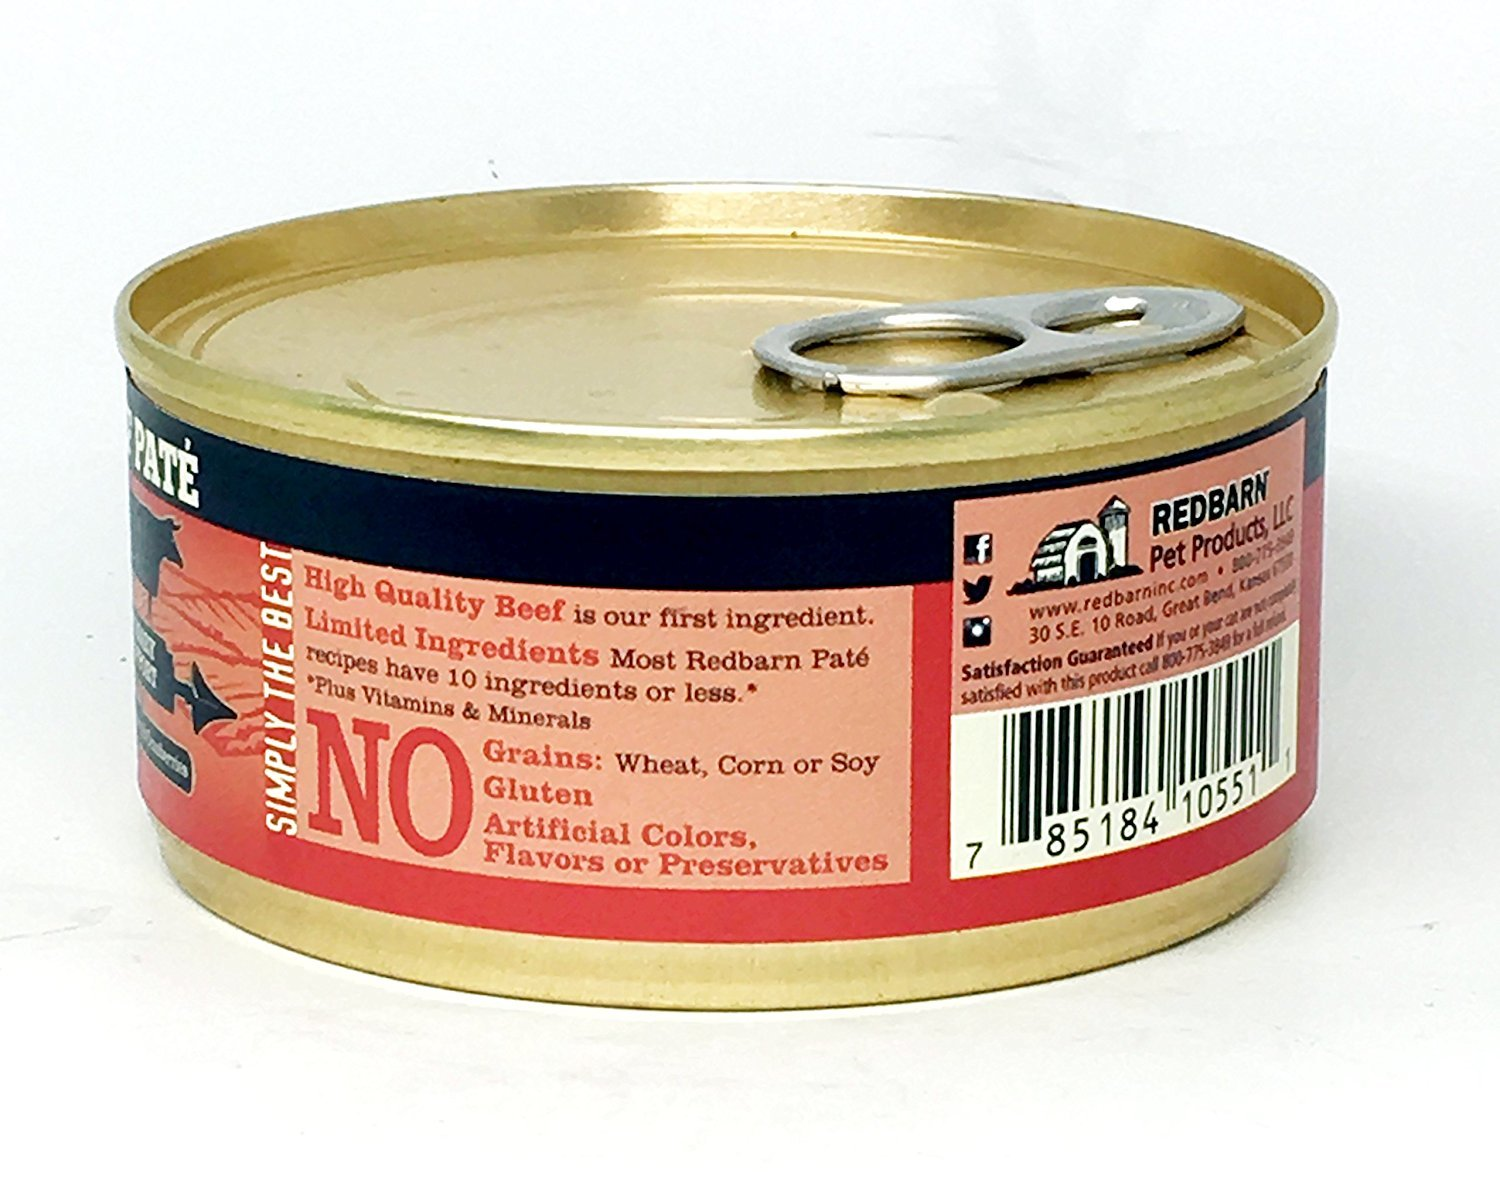 Amazon.com : RedBarn Naturals Grain Free Canned Cat Food Pate in 3 Flavors - Beef, Ocean Fish, and Chicken - 12 Cans Total, 5.5 Ounces Each - Plus 1 Pet ...